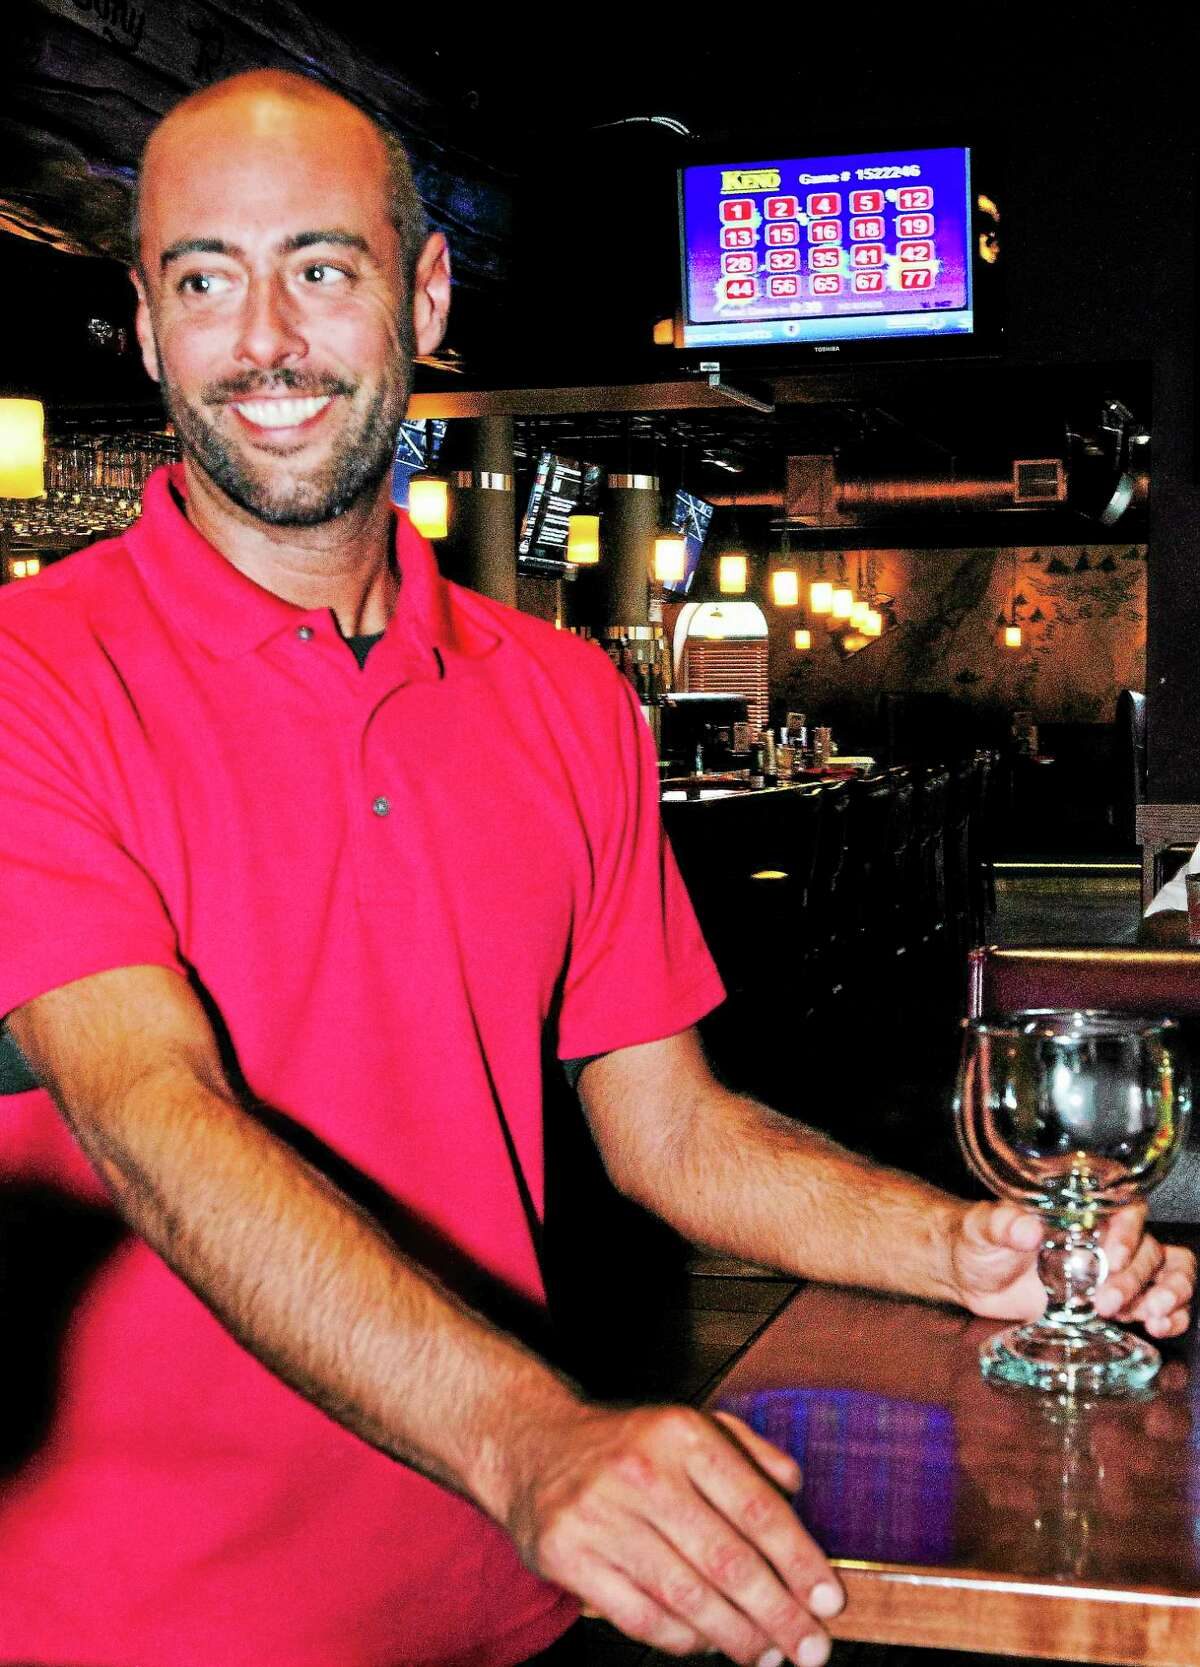 Bartender Ryan Meagher says that Keno is popular at Kaptain Jimmy's in Agawam on Aug. 27.